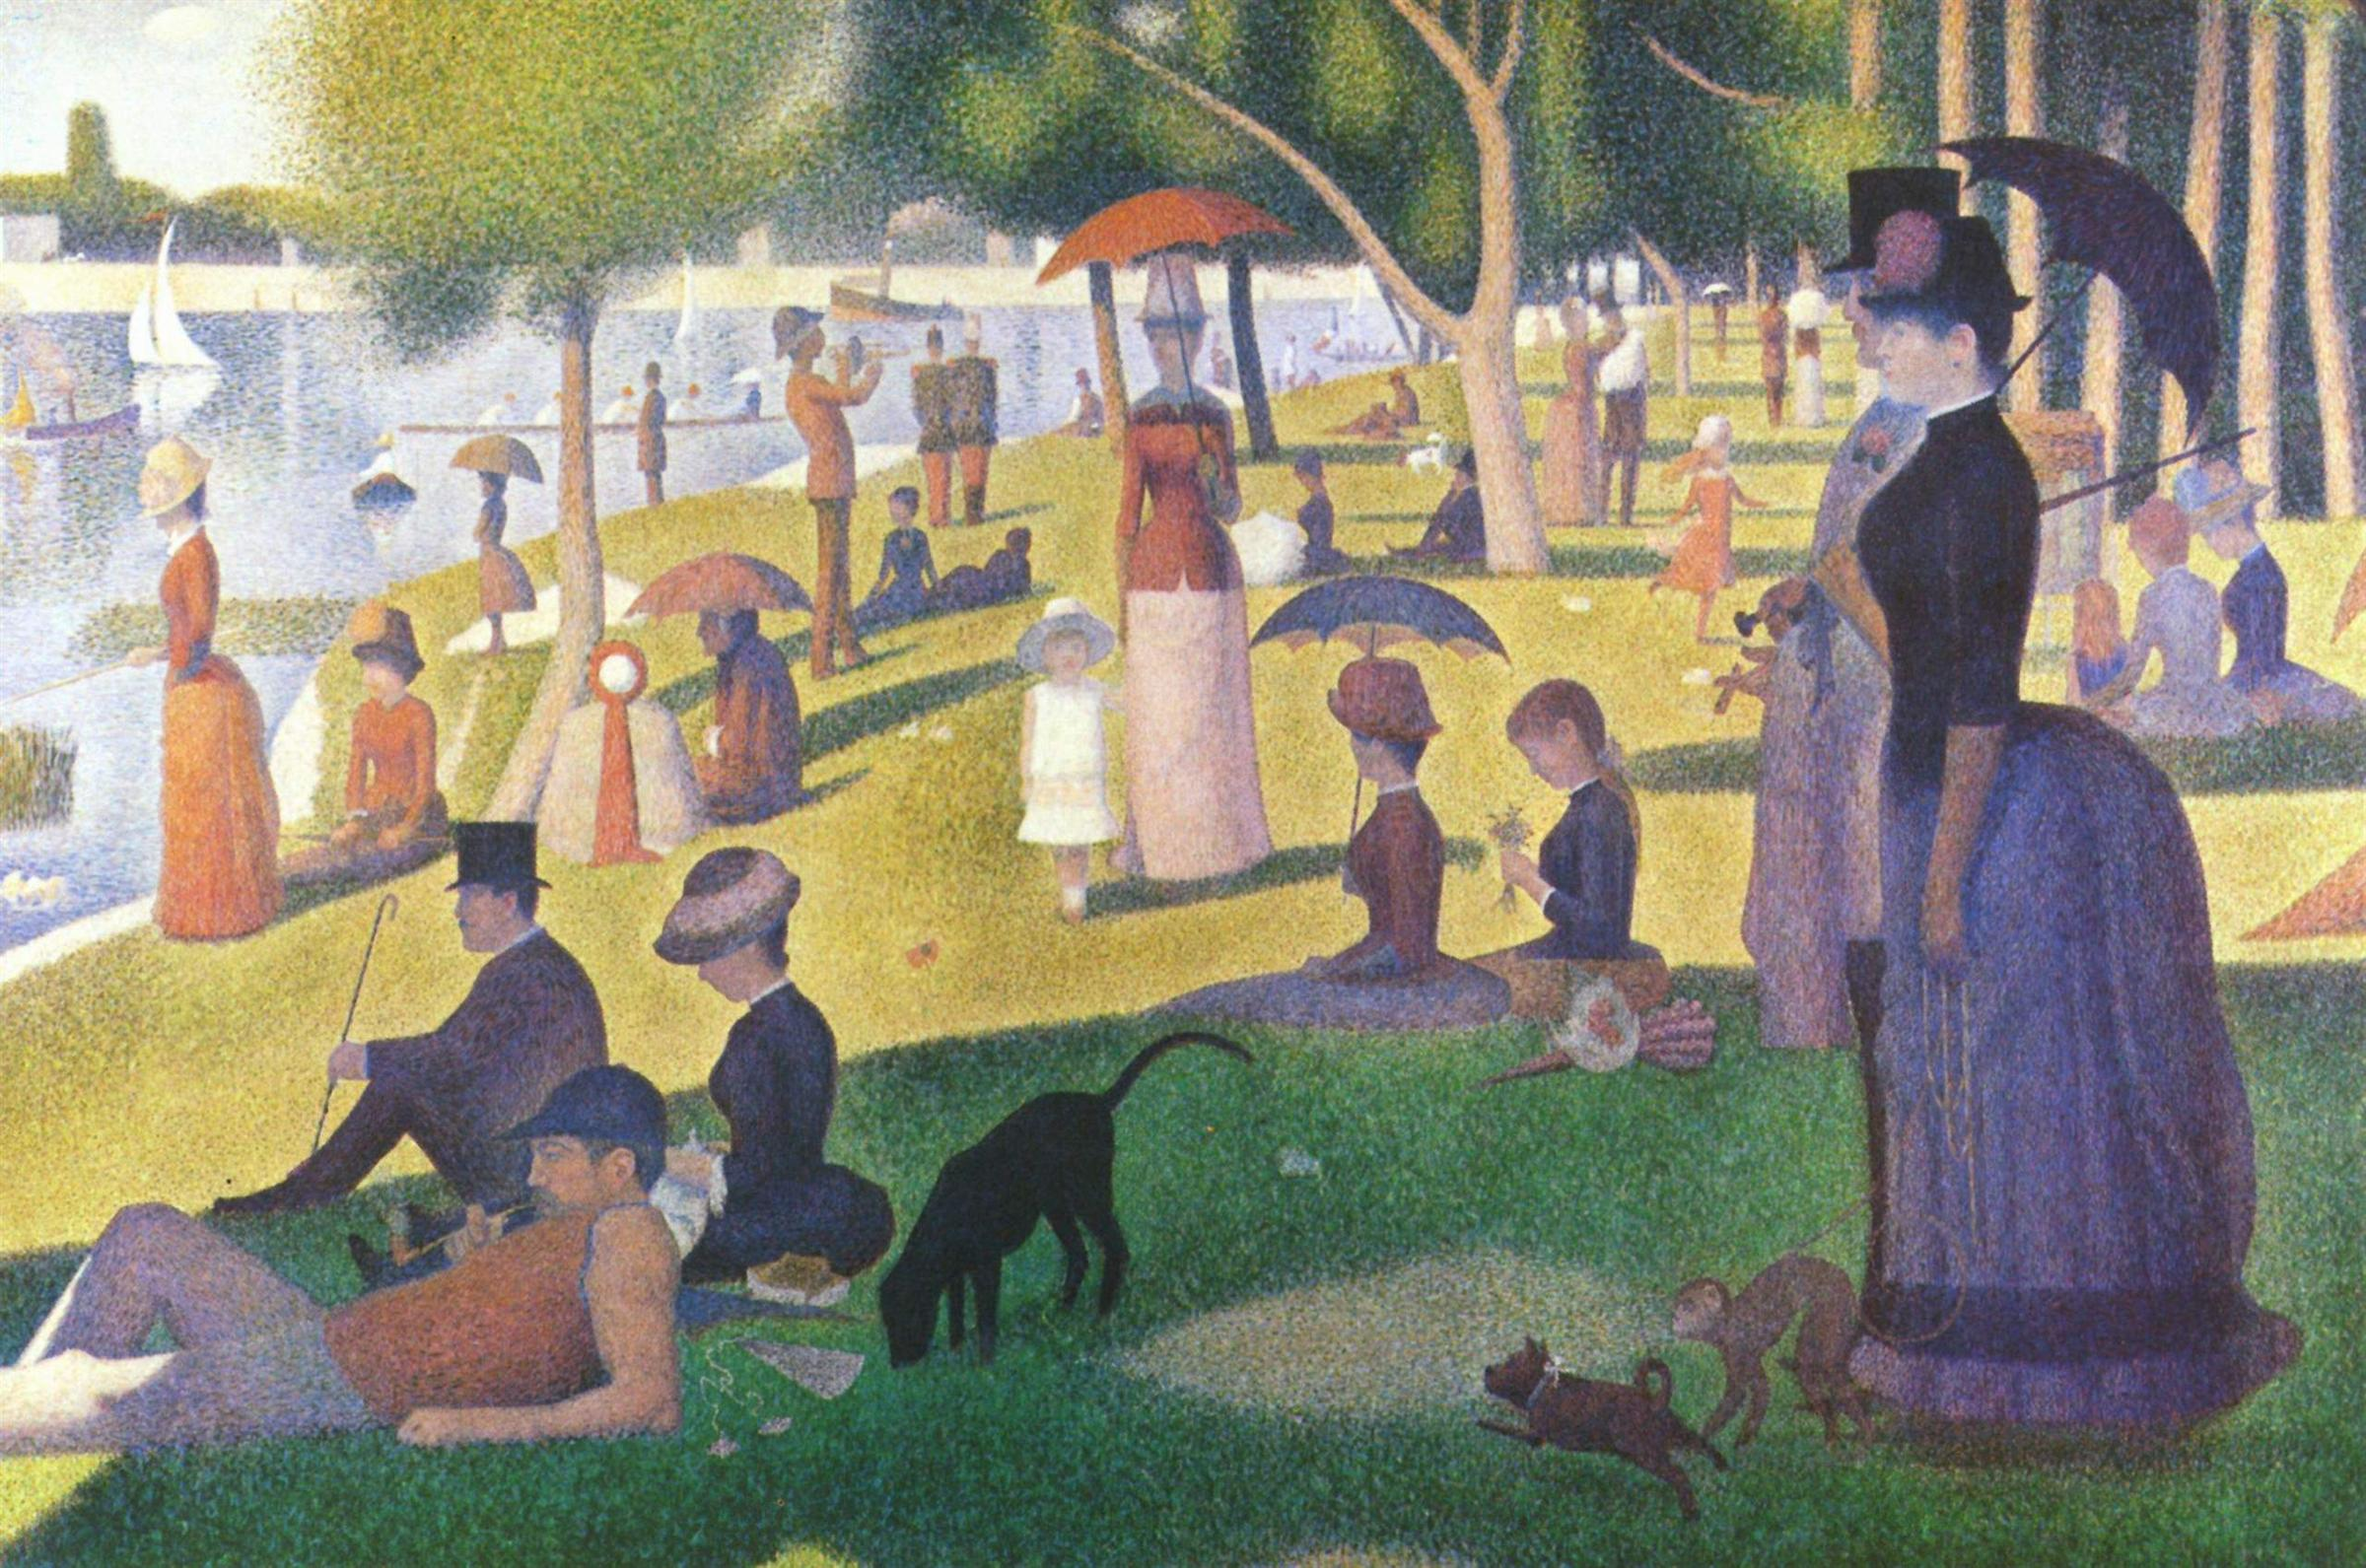 http://weartlovers.wehomeowners.com/wp-content/uploads/2016/07/seurat-jatte.jpg